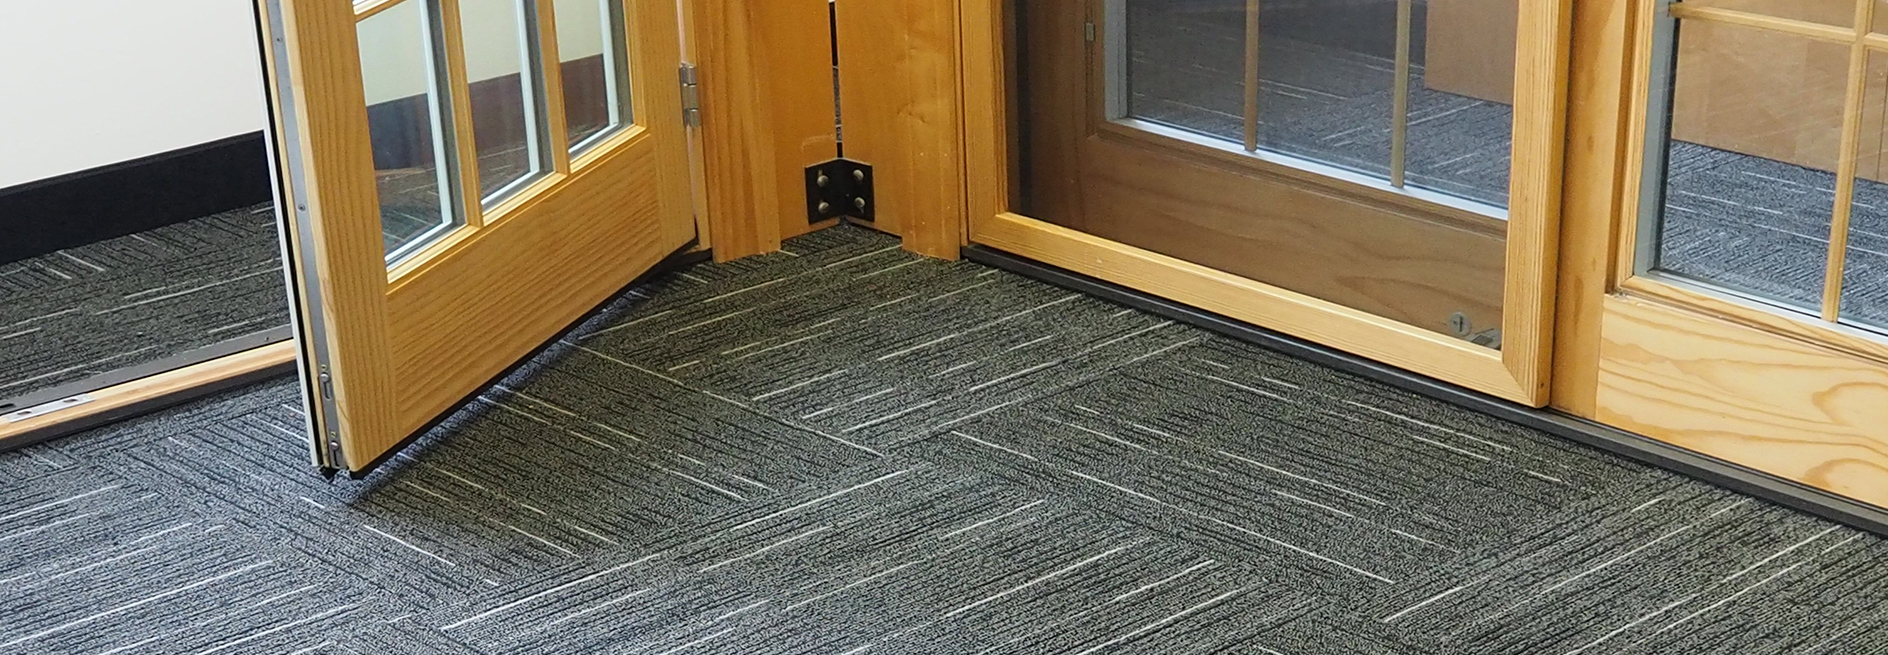 Example Of Shaw Carpet Tile